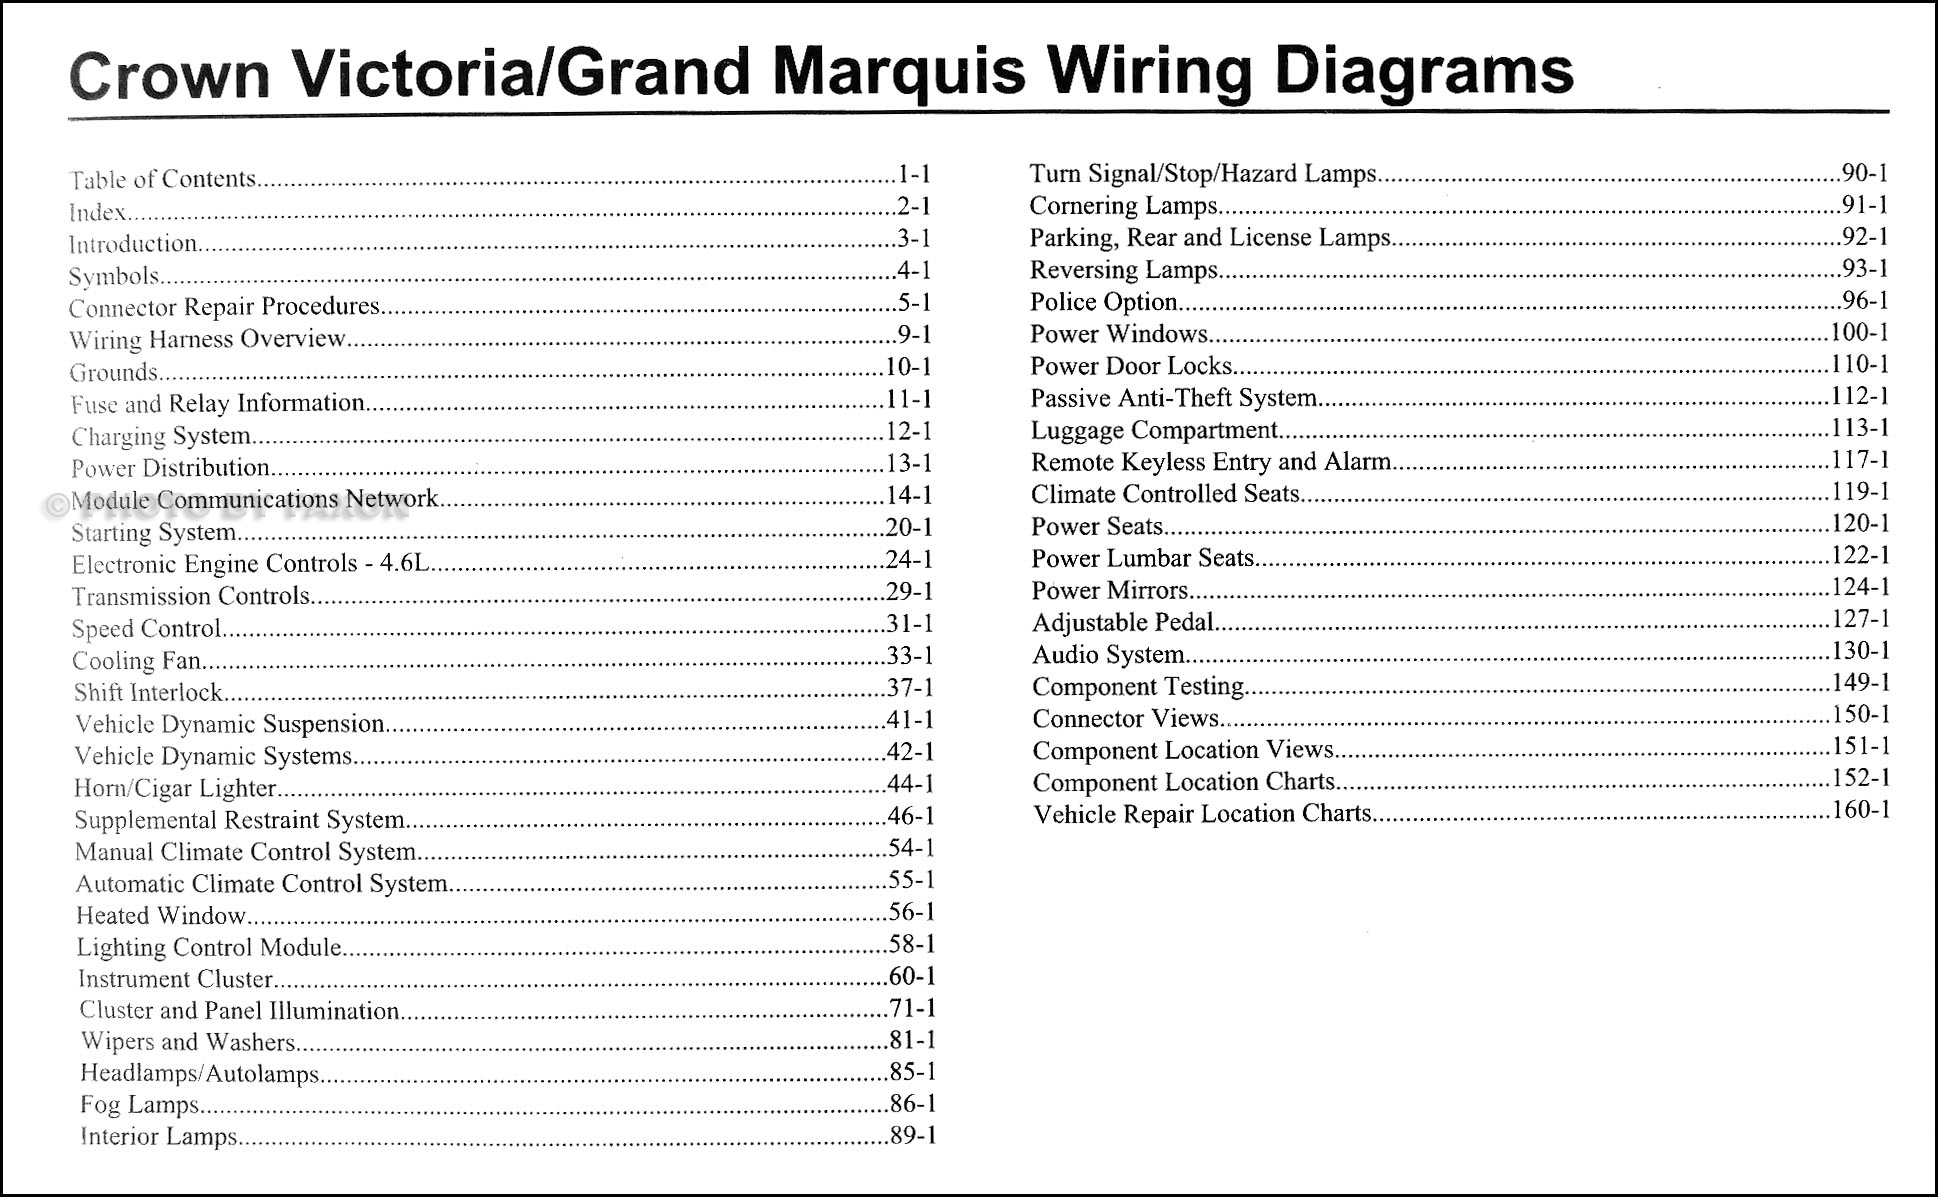 2009FordCrownVictoriaOWD TOC 2009 crown victoria & grand marquis original wiring diagram manual 1997 grand marquis radio wiring diagram at n-0.co